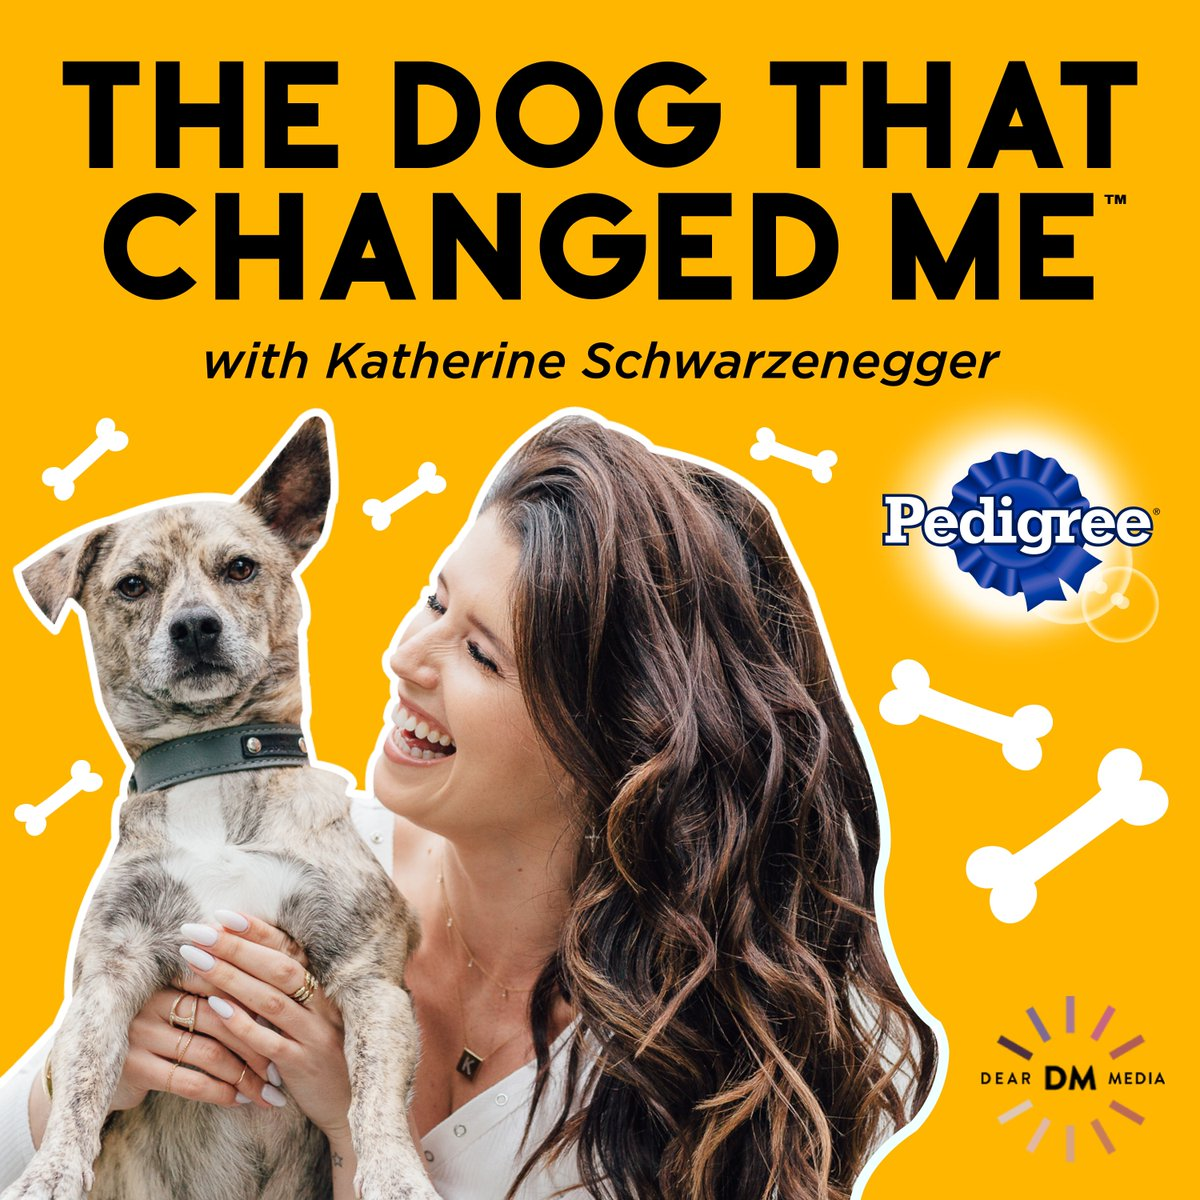 """""""The Dog That Changed Me"""" with adoption advocate @kschwarzenegger is out now! Listen to interviews with Mandy Moore, Bryce Dallas Howard, Haylie Duff and Minka Kelly about their pups. #EveryPupsSuperpower Link: https://t.co/6K53sop2pH https://t.co/RbAi5FvAQG"""